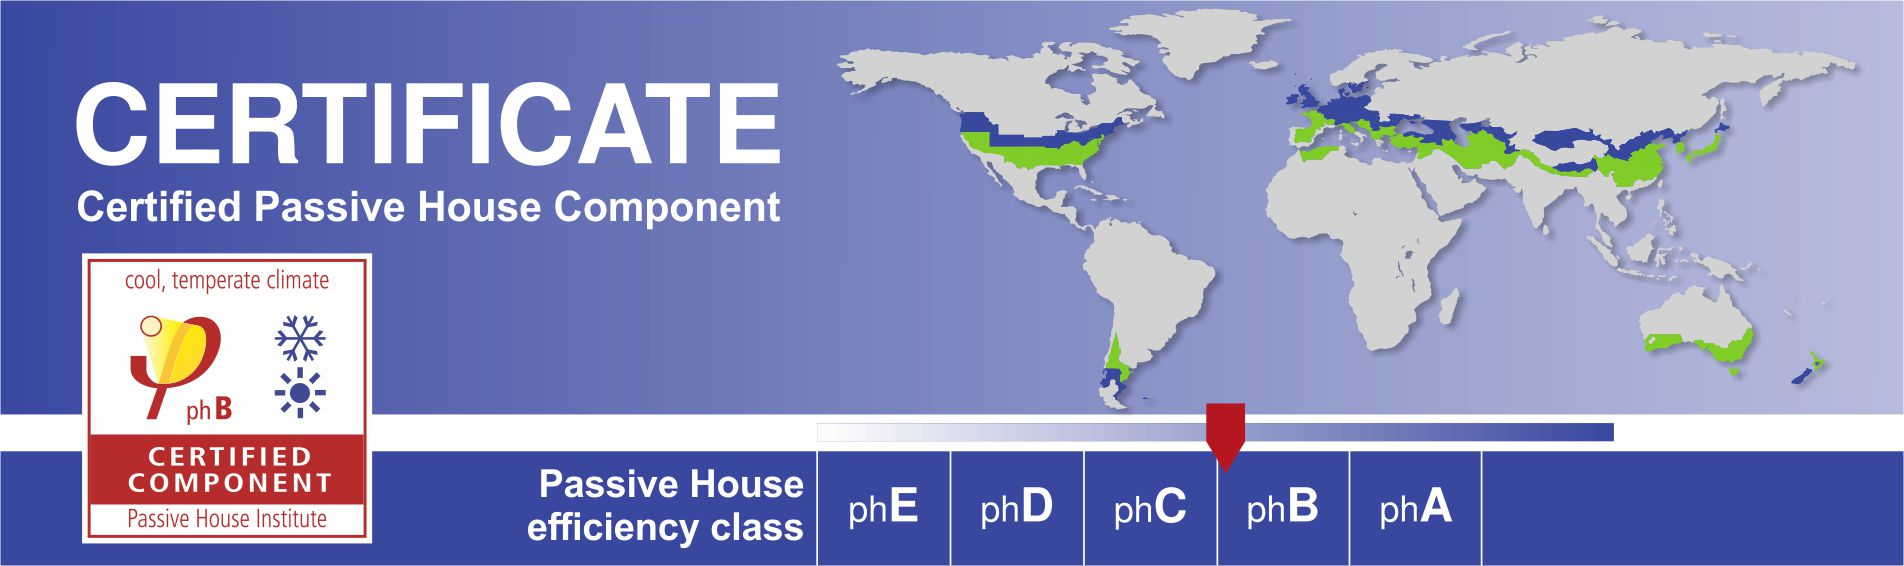 Certificate for passive houses